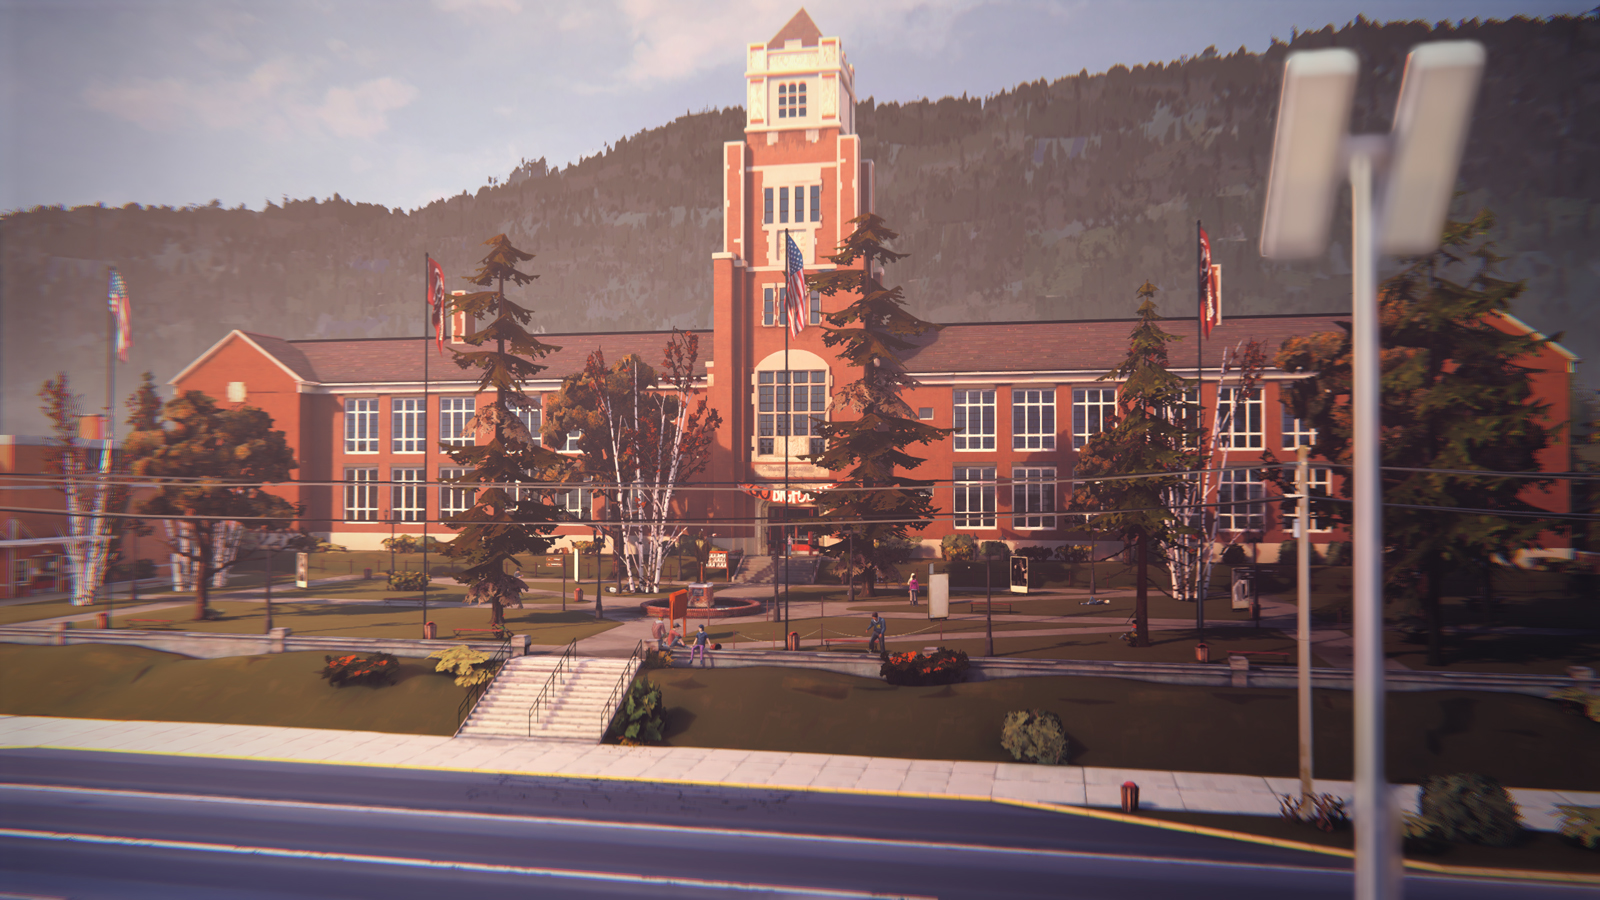 http://vignette2.wikia.nocookie.net/rememberme/images/4/4b/Blackwell_Academy-02.jpg/revision/latest?cb=20150218093152